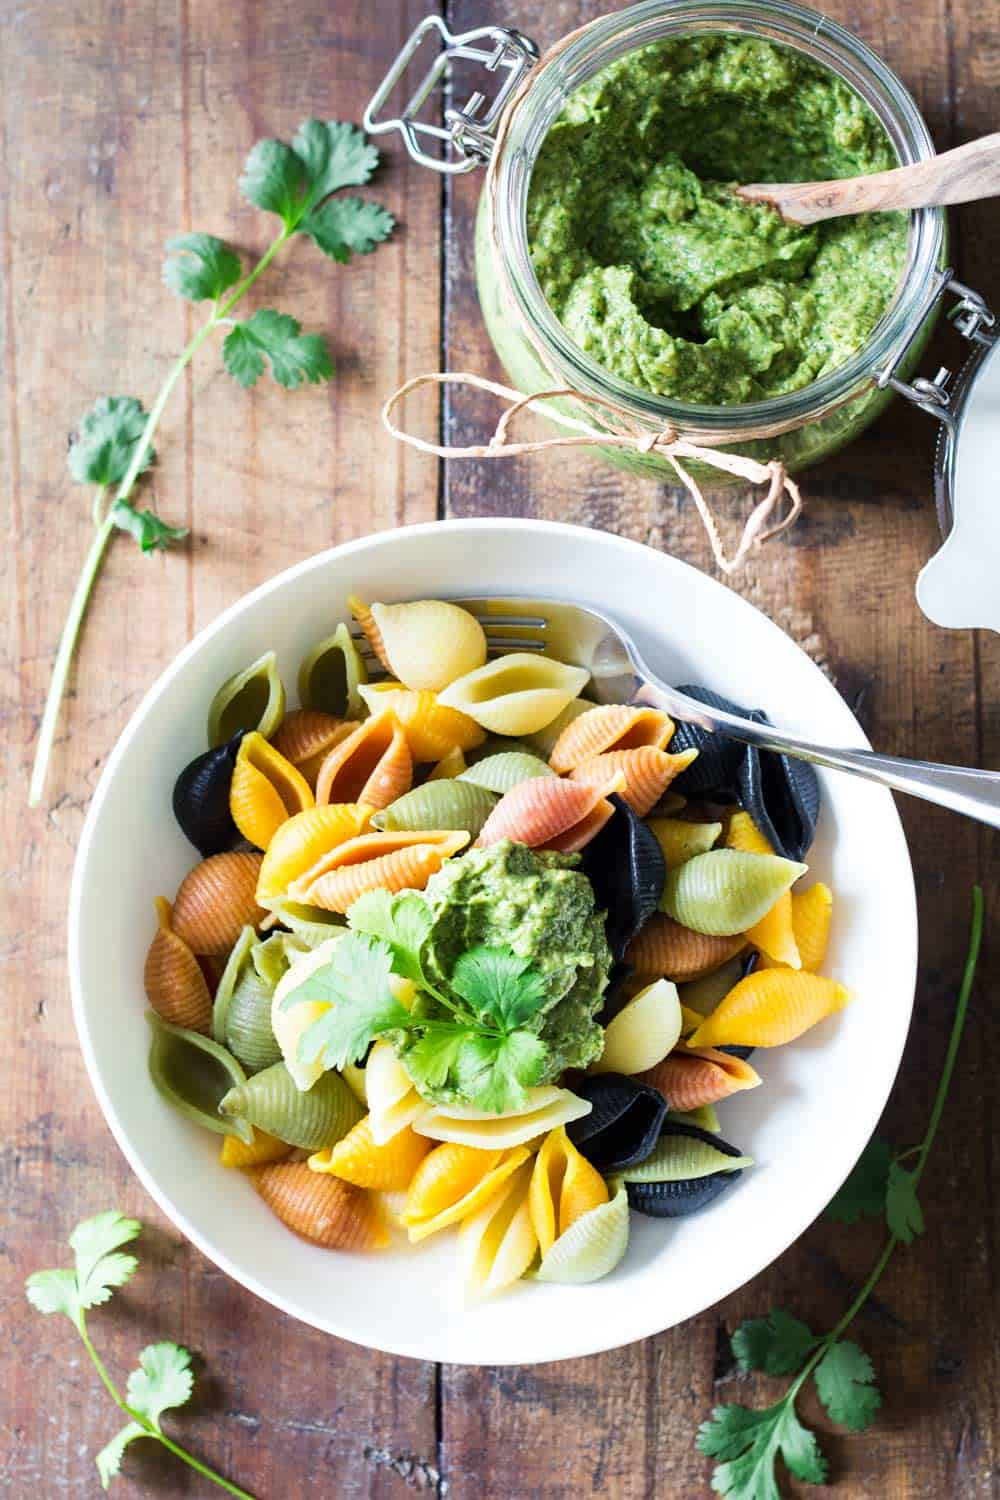 Top view of bowl of rainbow shell pasta topped with Cilantro Pesto, and a jar of Cilantro Pesto with a wooden spoon.